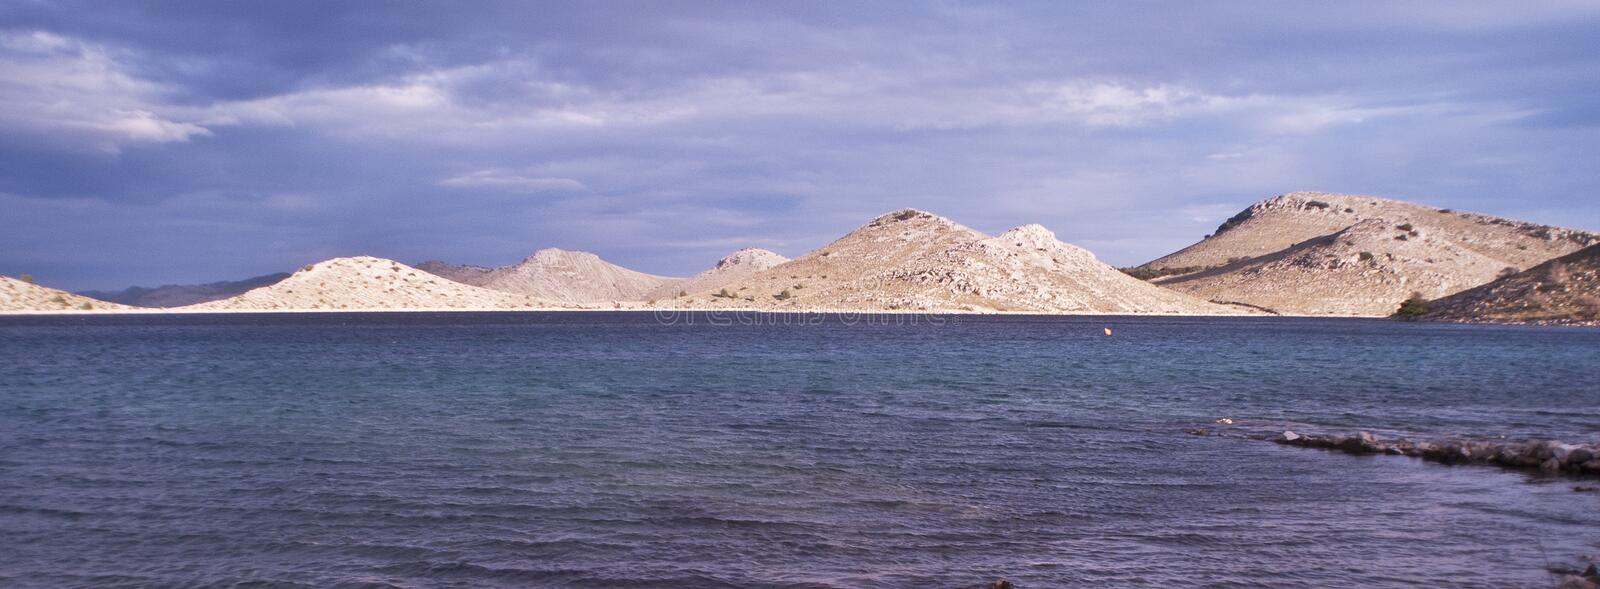 Stationnement national Kornati Croatie photographie stock libre de droits